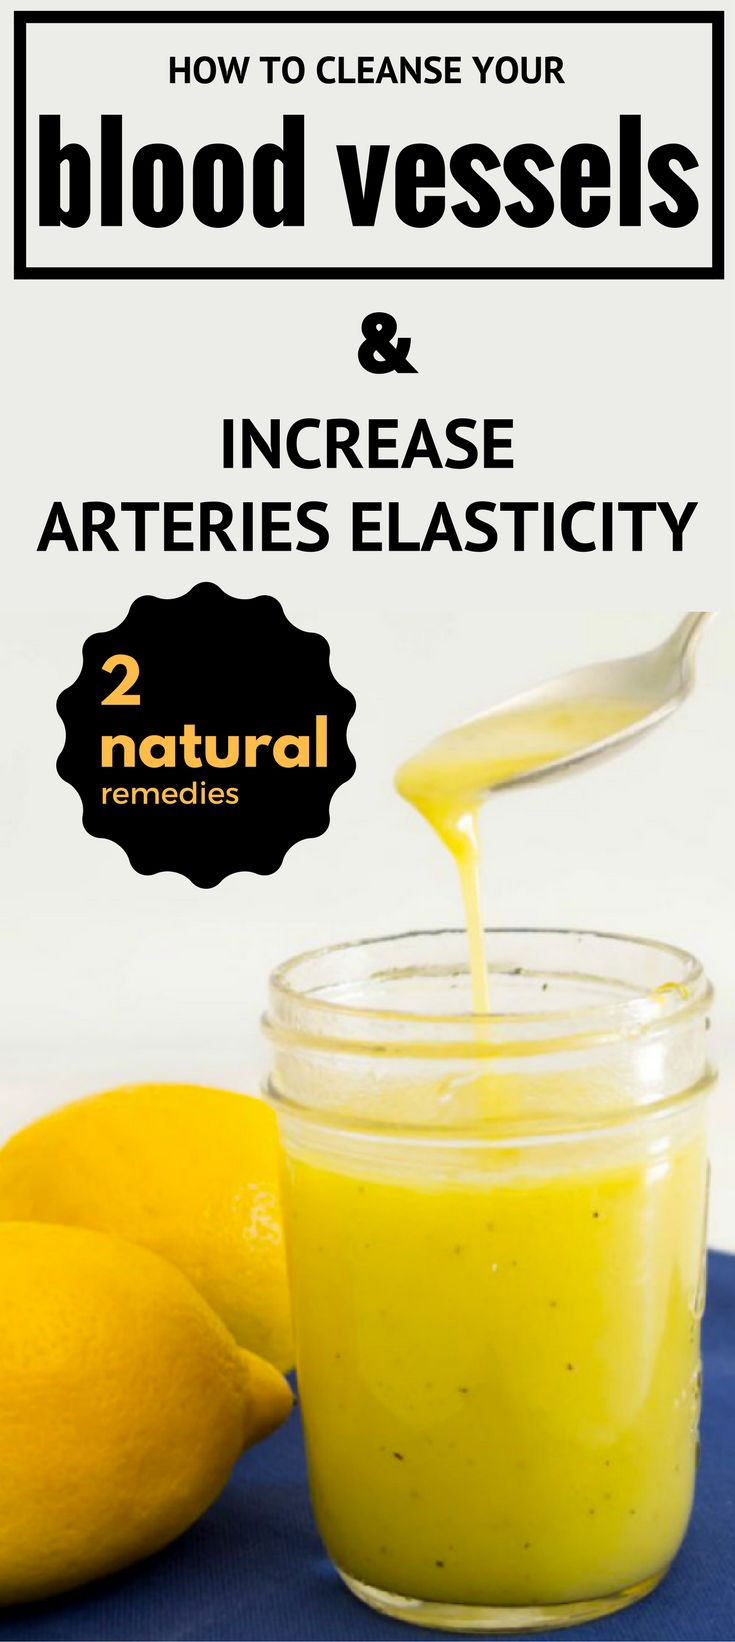 How to Cleanse Your Blood Vessels and Increase Arteries Elasticity